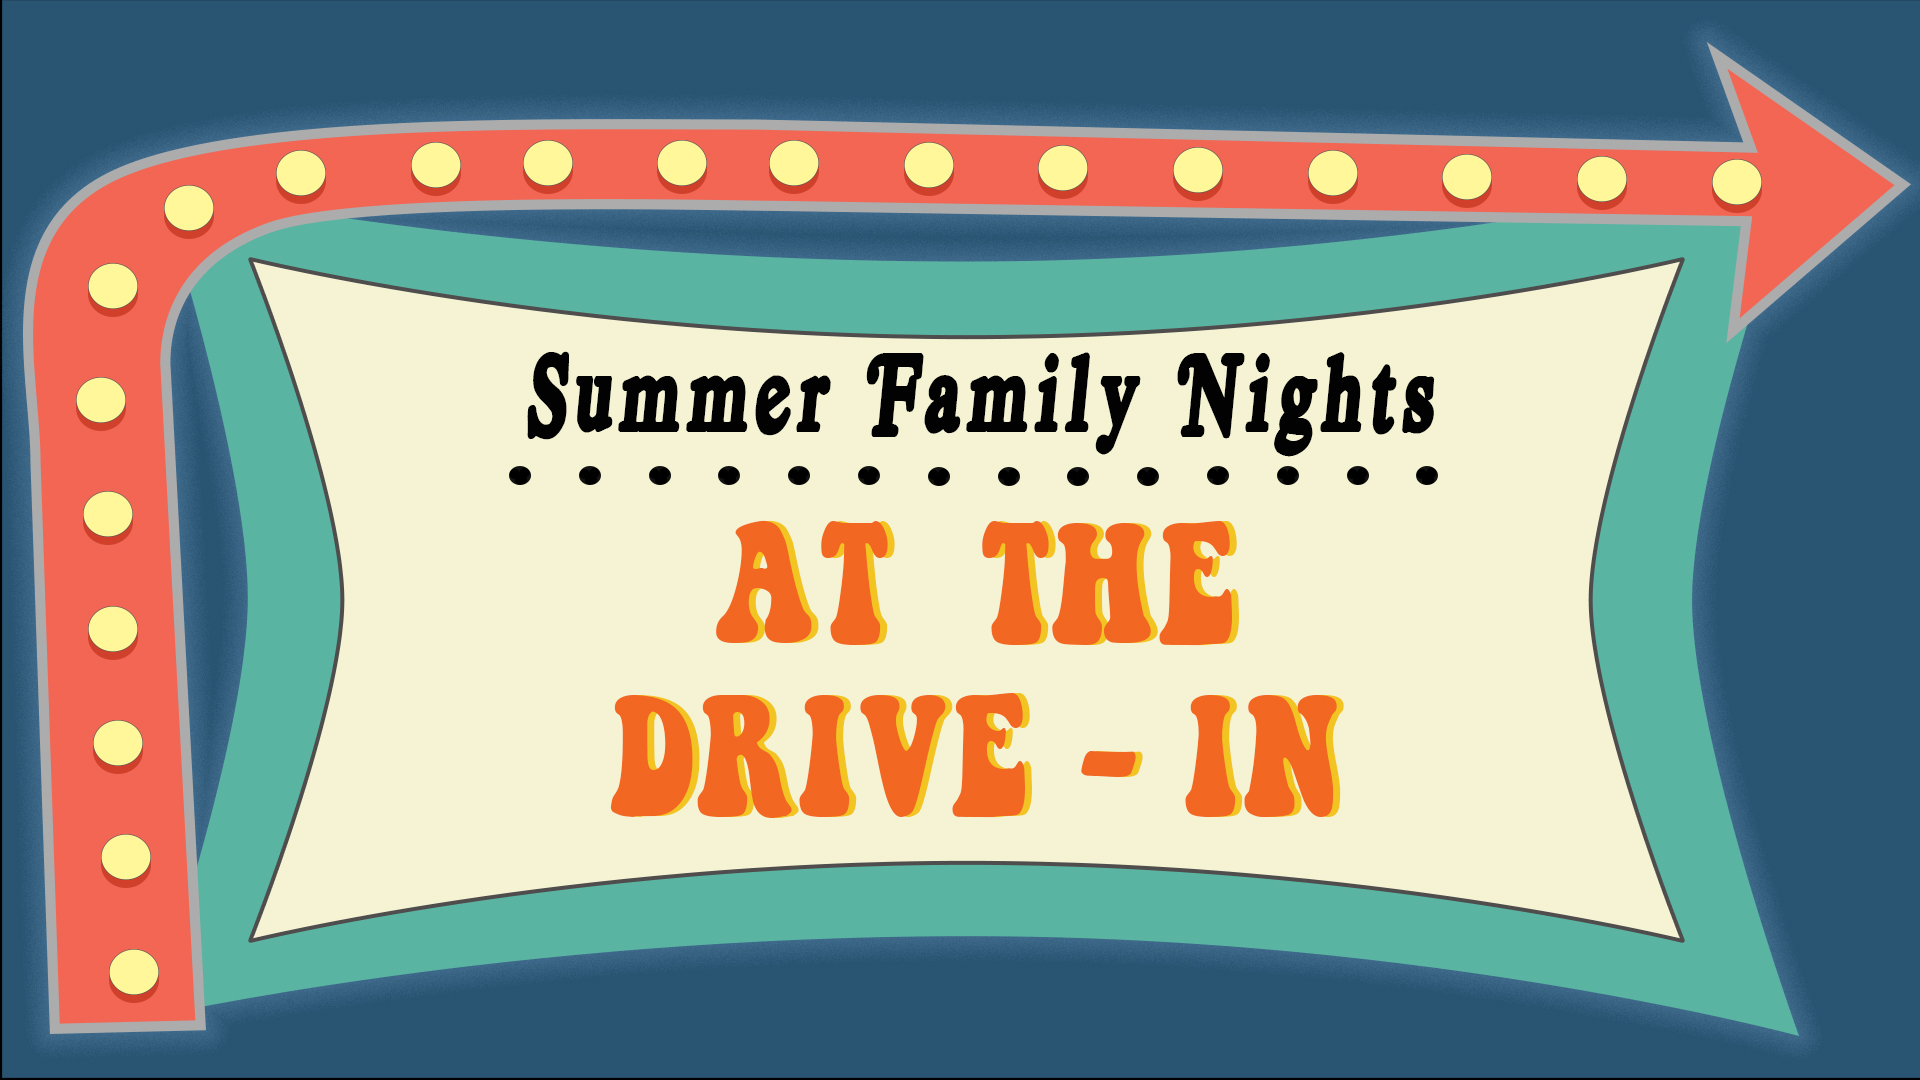 Summer Family Nights - At the Drive In